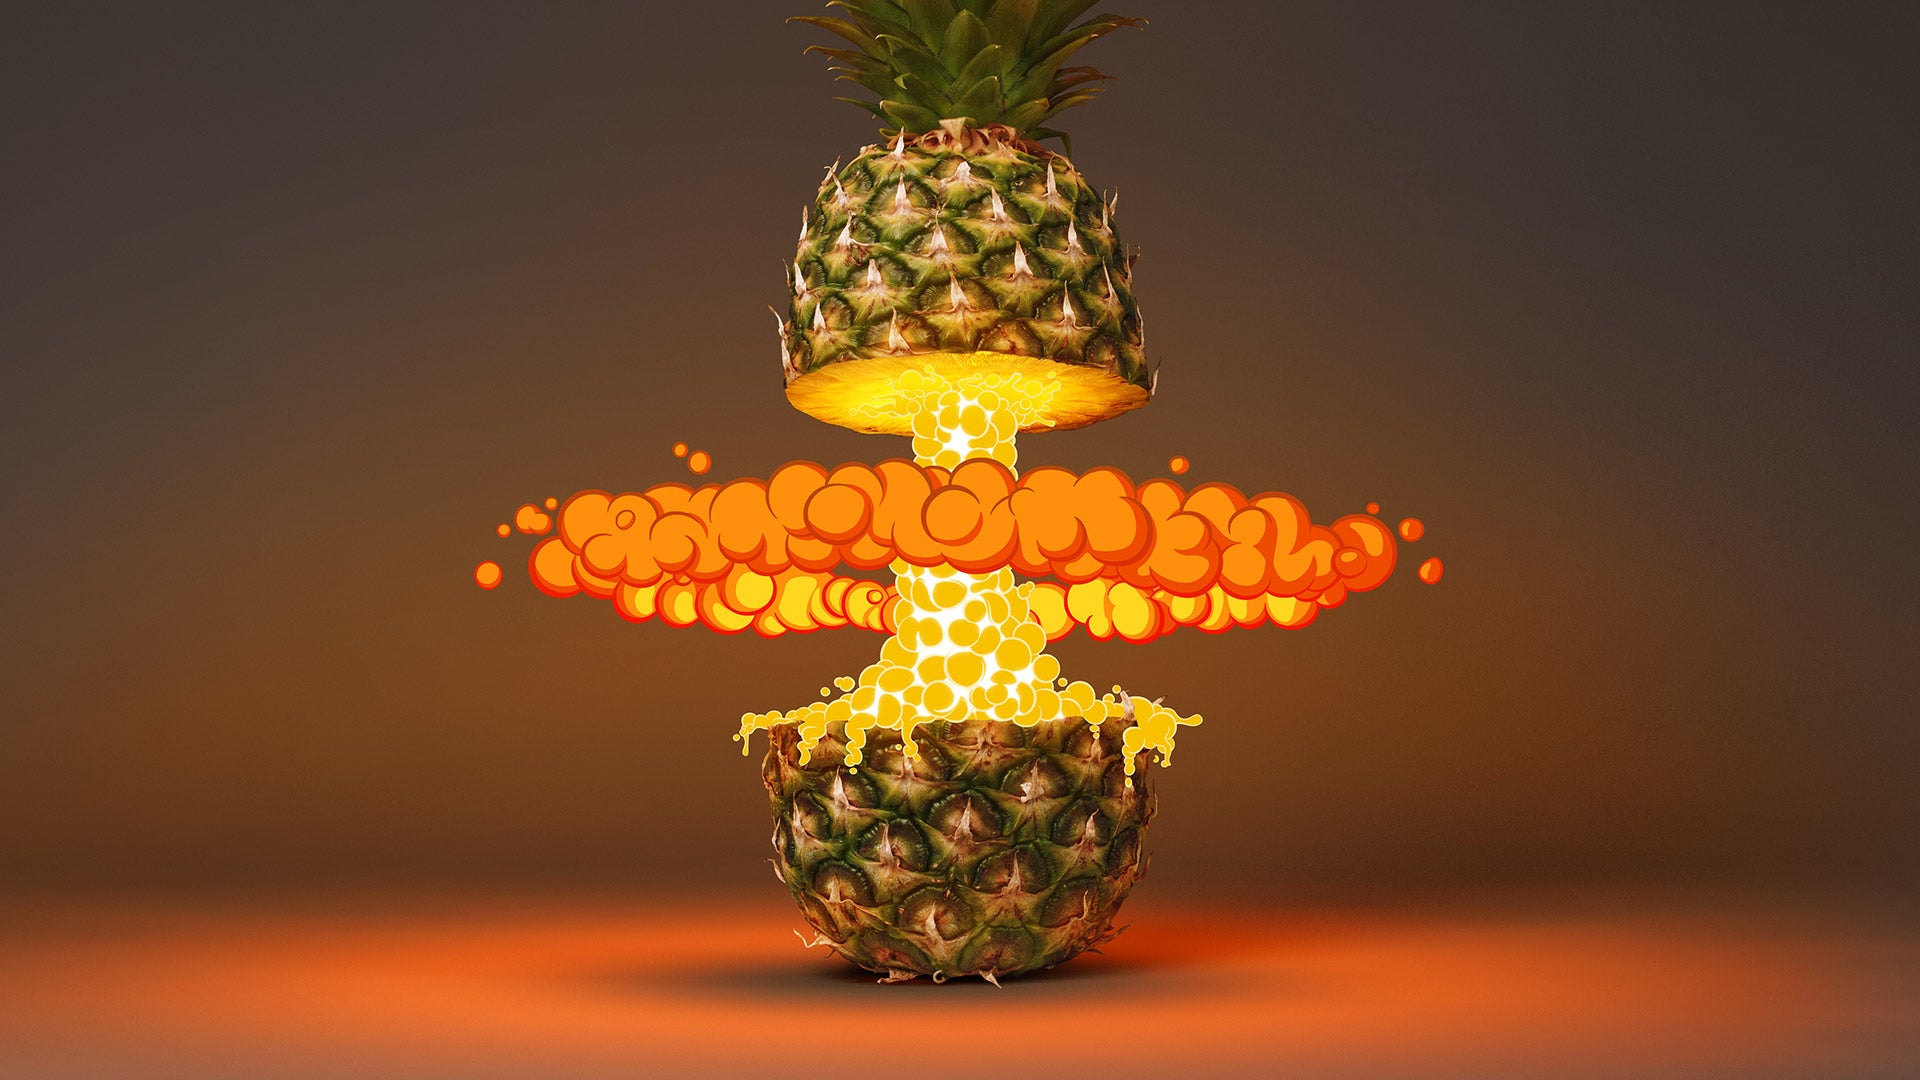 Deliciously explosive tropical fruits